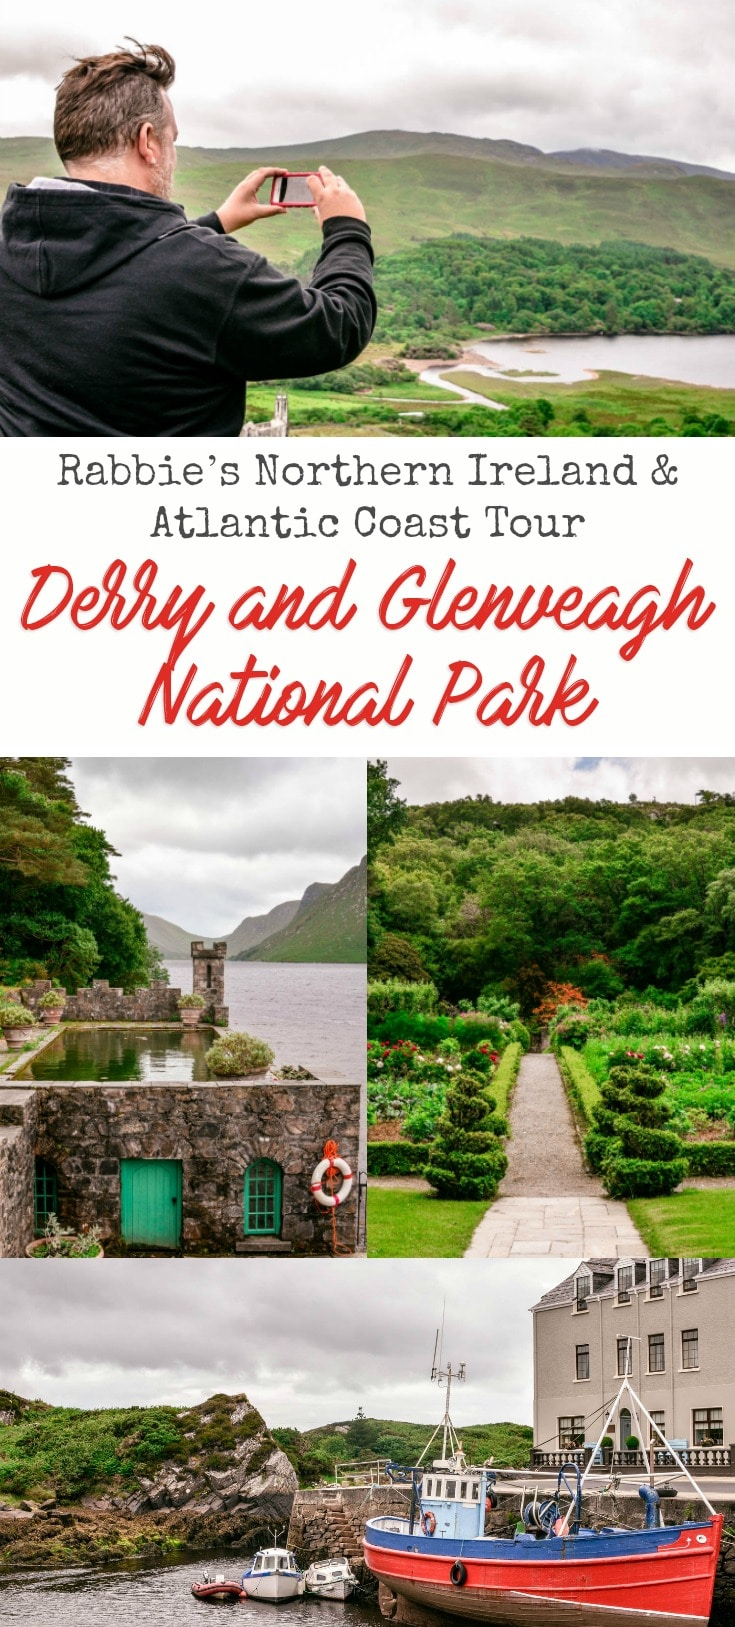 rabbie's Derry and Glenveagh National Park